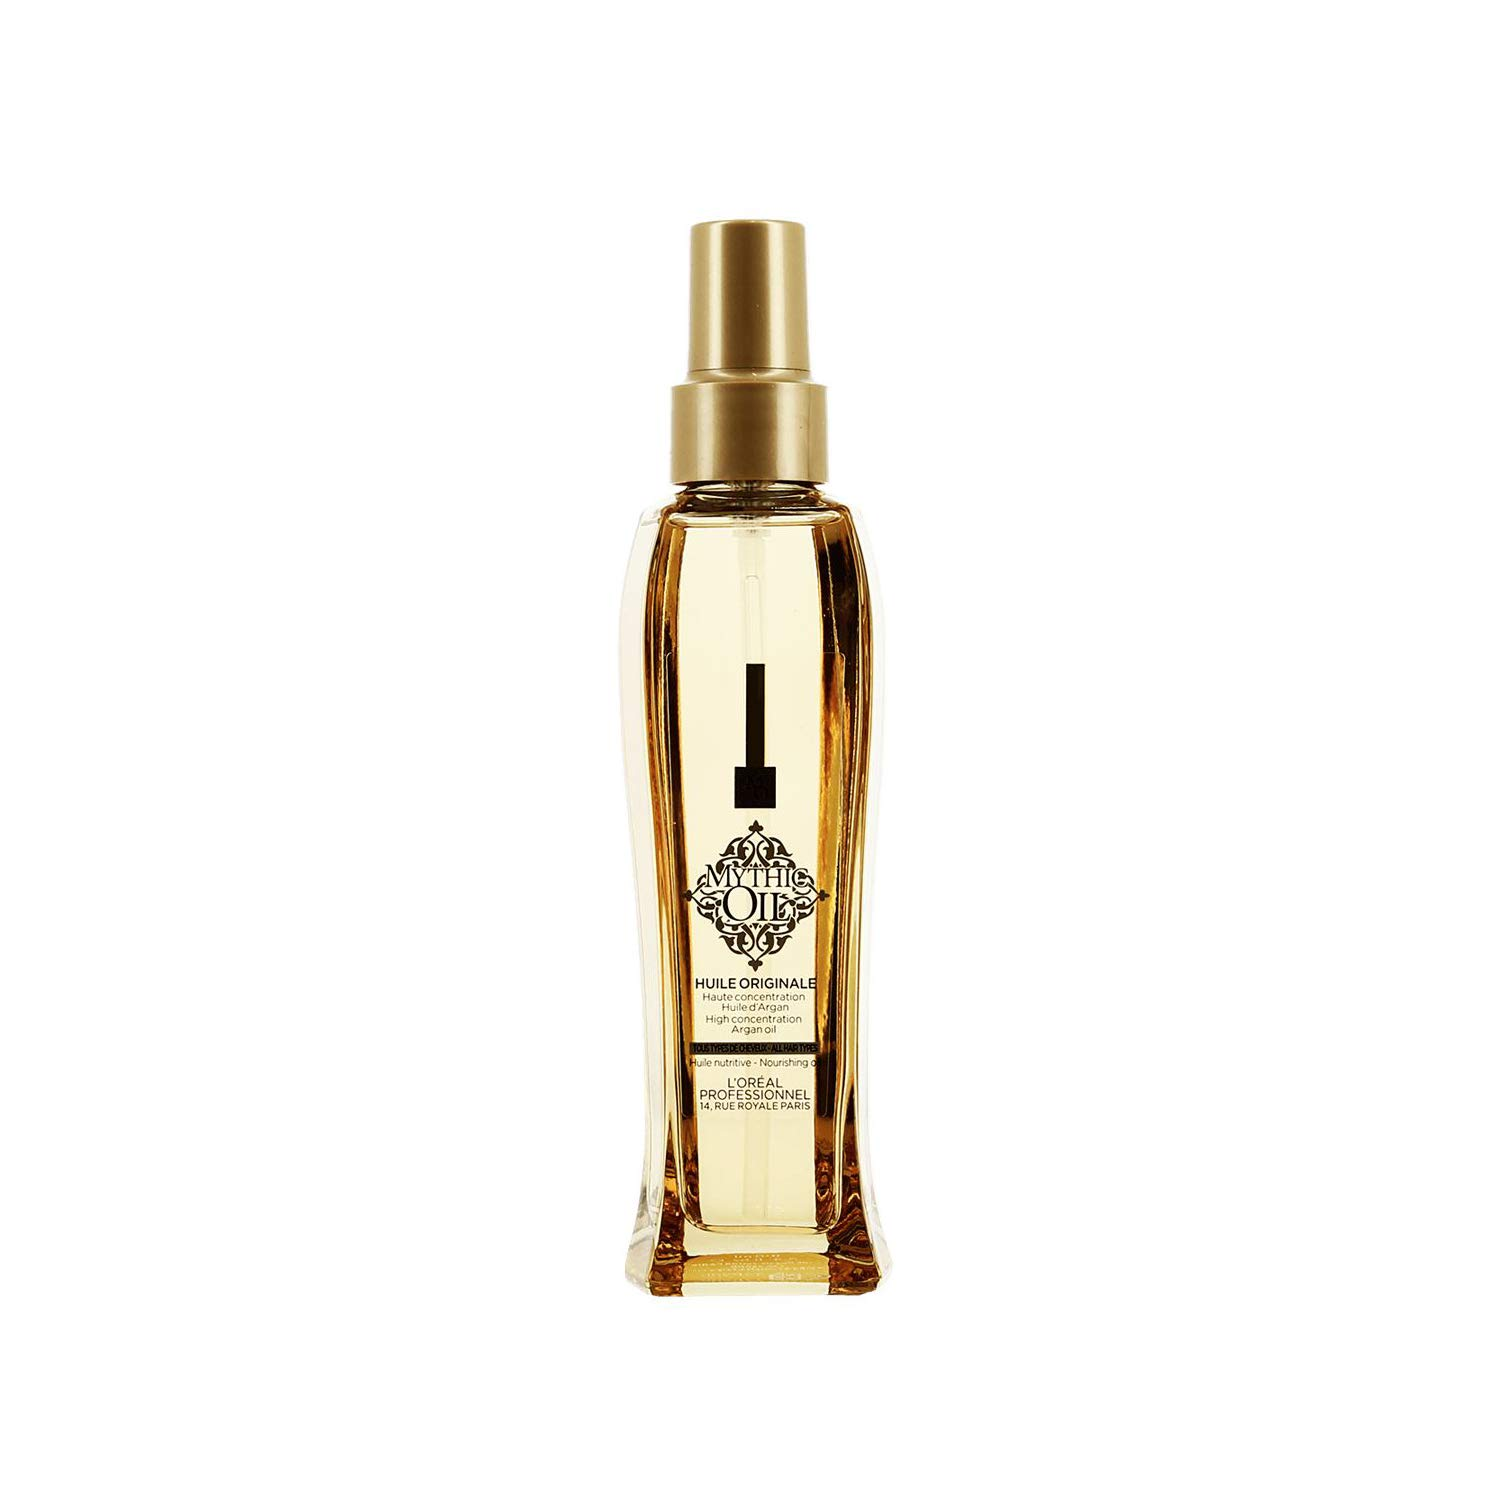 L'Oreal Prof 100ml Mythic Original Oil